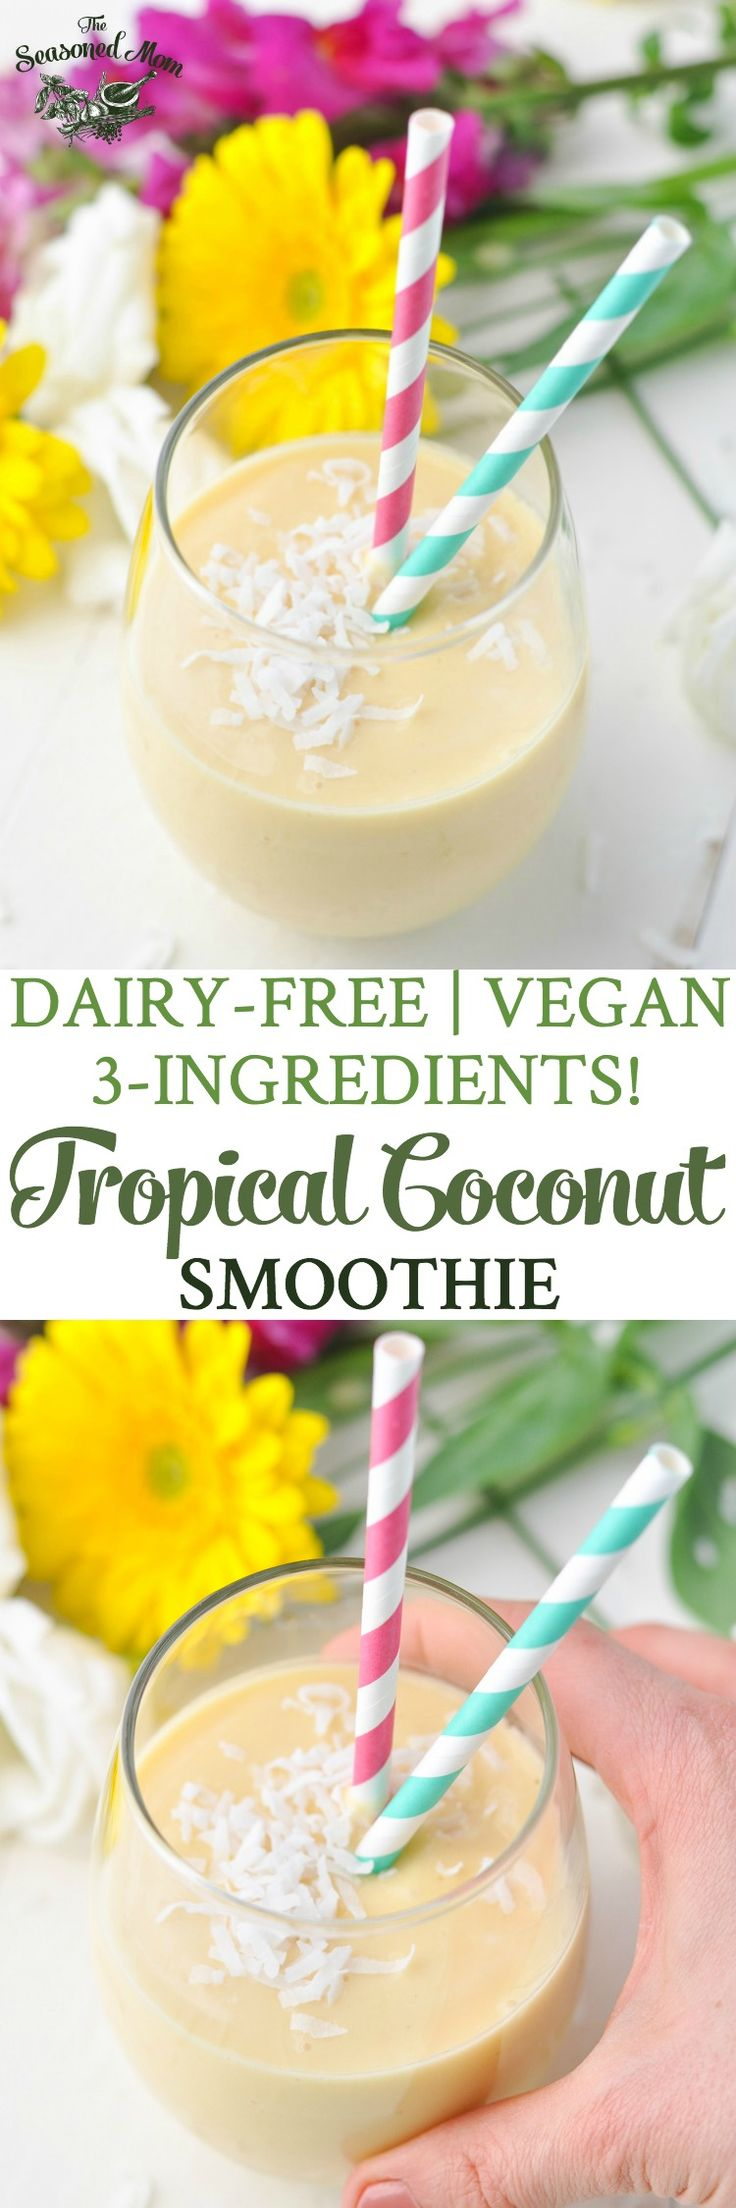 3-Ingredient Coconut Tropical Smoothie! Dairy-Free | Vegan | Gluten Free | Healthy Breakfast Recipes | Breakfast Ideas | Healthy Snacks | Vegan Breakfast | Vegan Recipes | Smoothies | Smoothie Recipes #ad @so_delicious @target